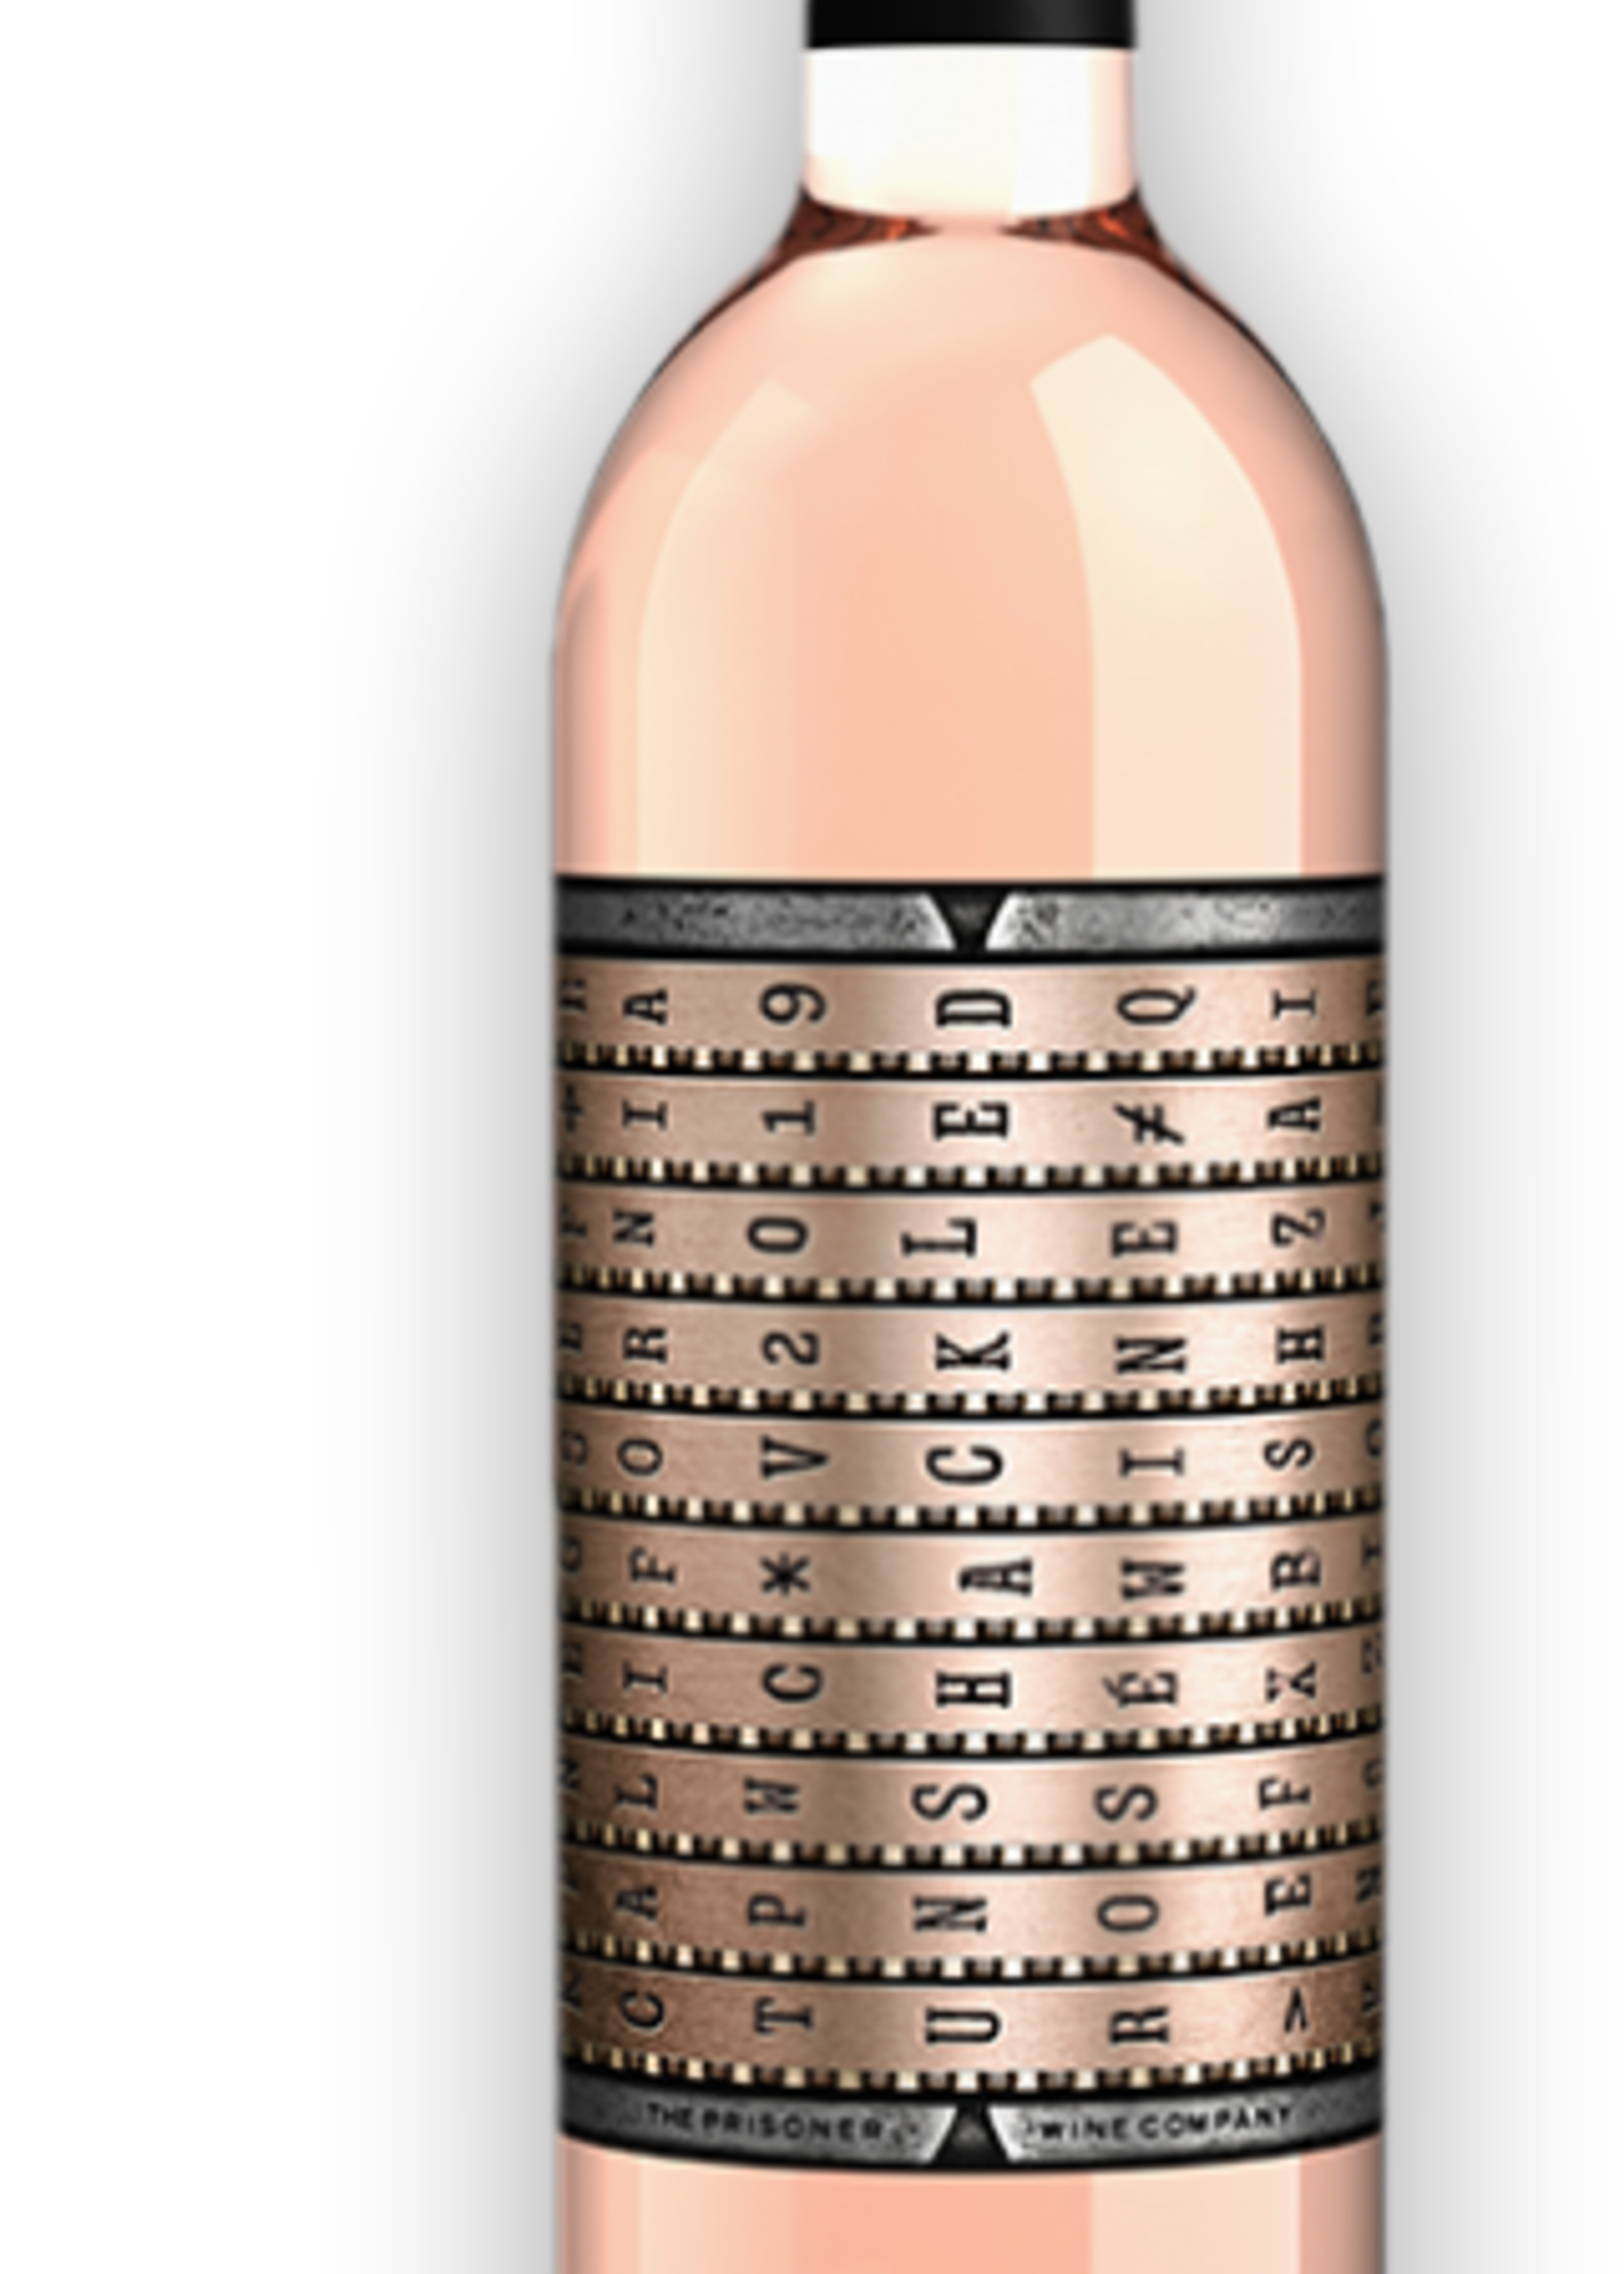 Unshackled Rose from Prisoner Wine Company